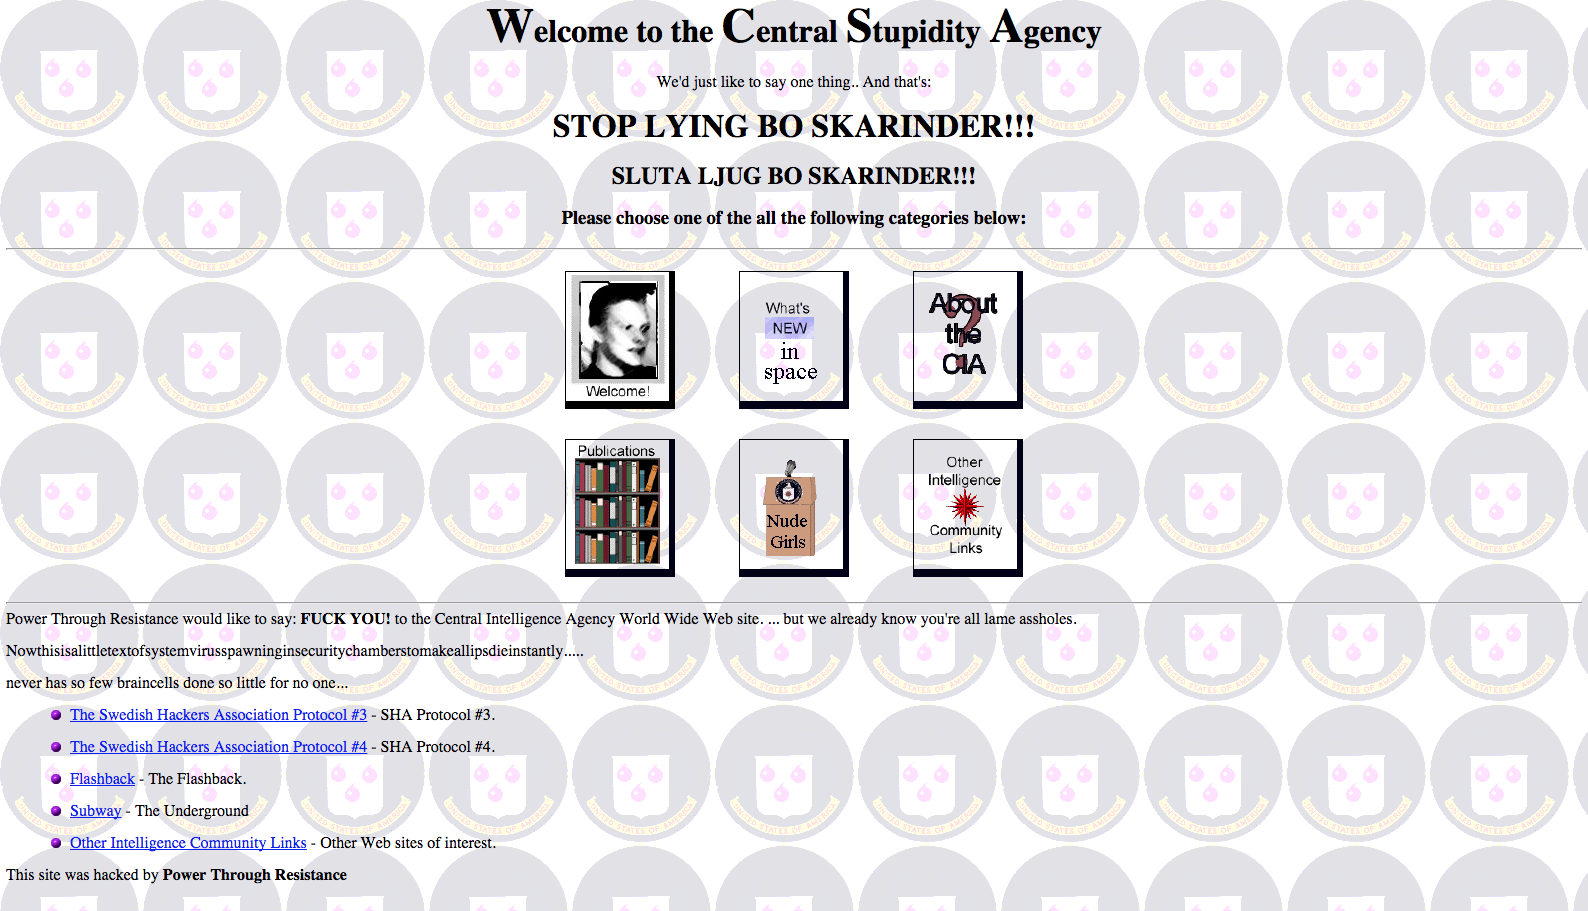 That Time Hackers Changed the CIA Website to 'Central Stupidity Agency'